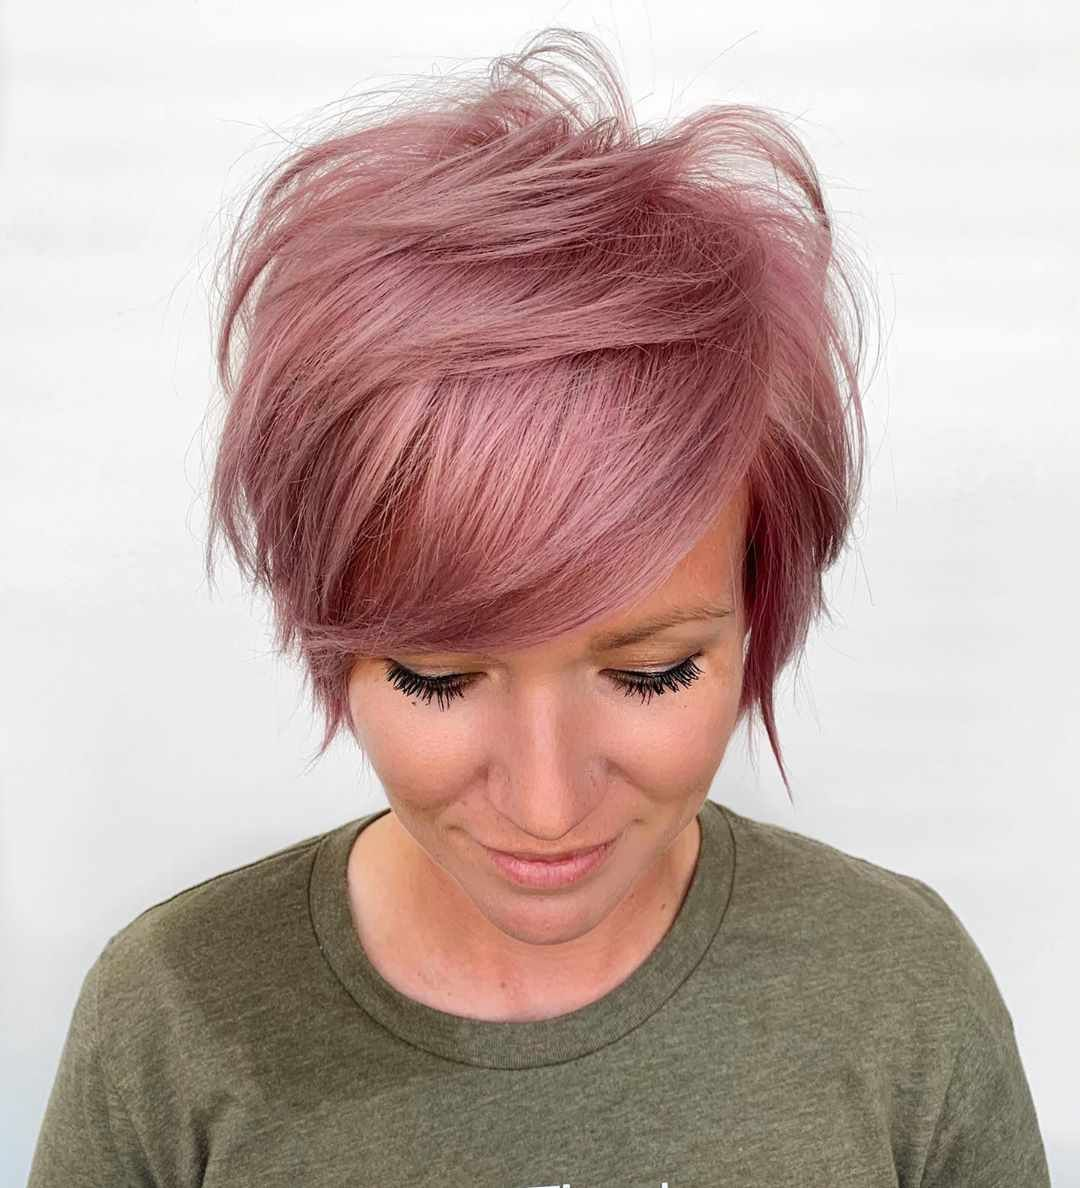 Pin by Lacey Vidal on Fashion  Short hair styles, Super short